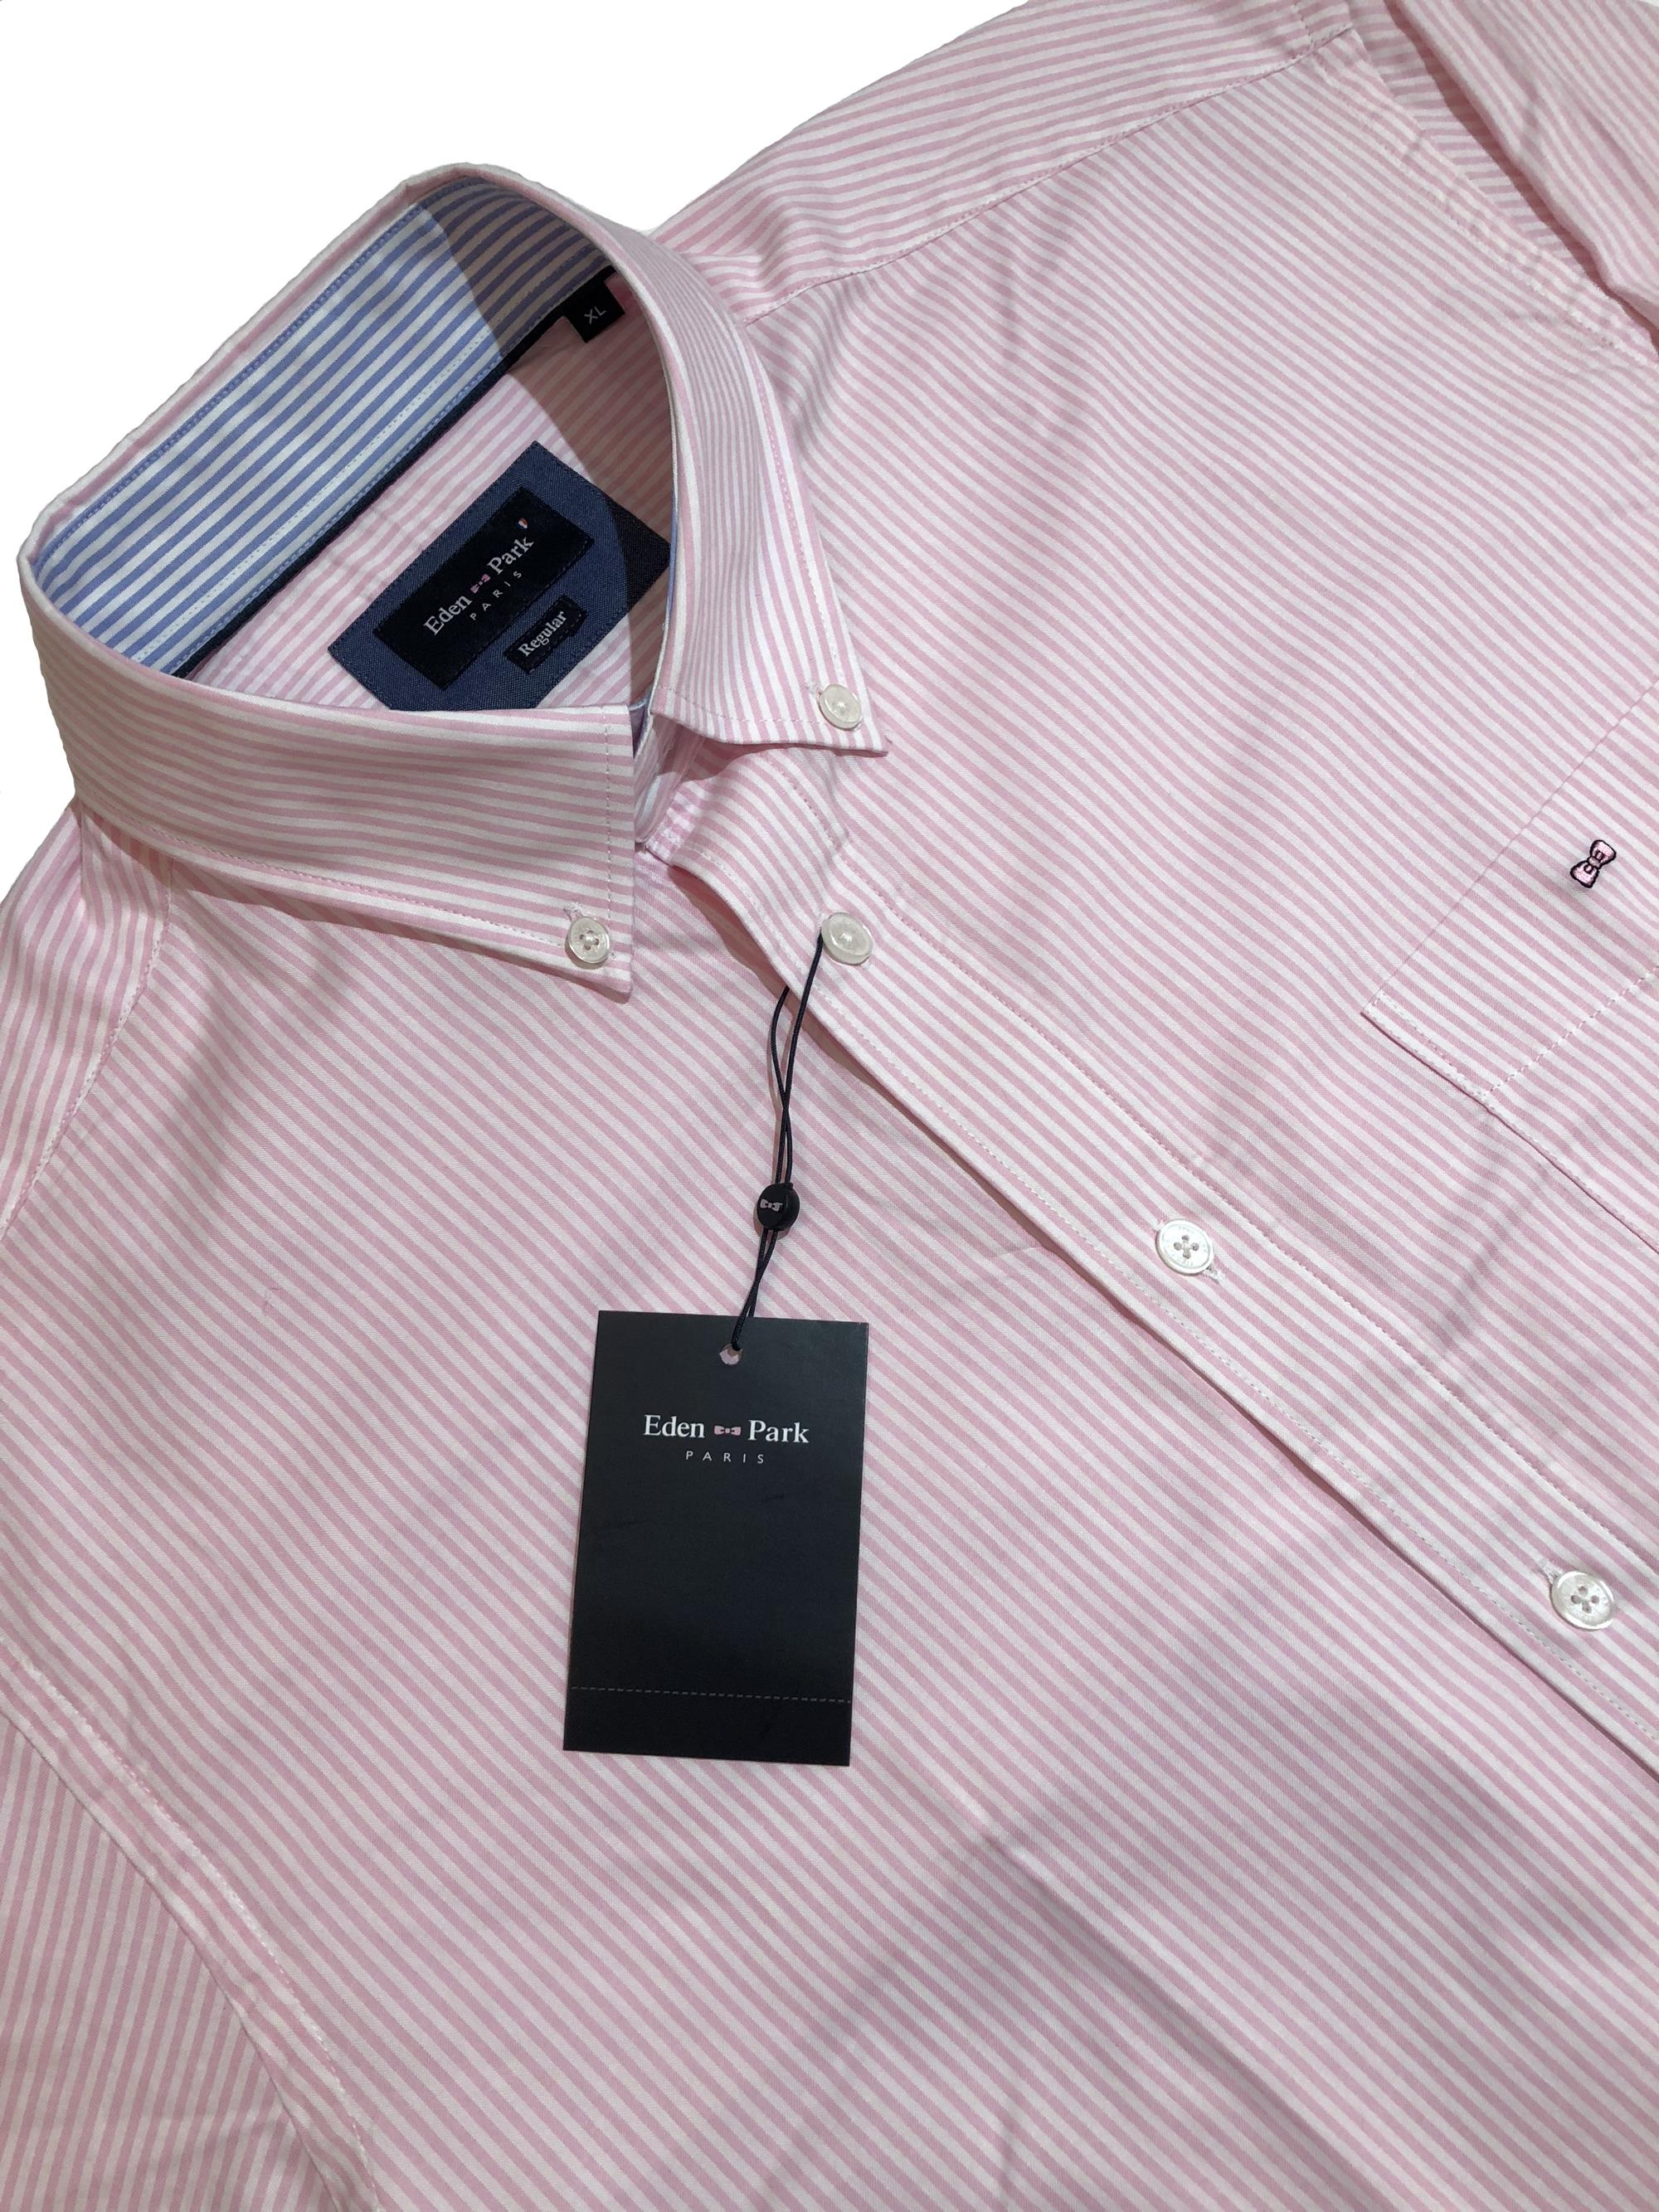 eden park classic long sleeve striped shirt (pink)